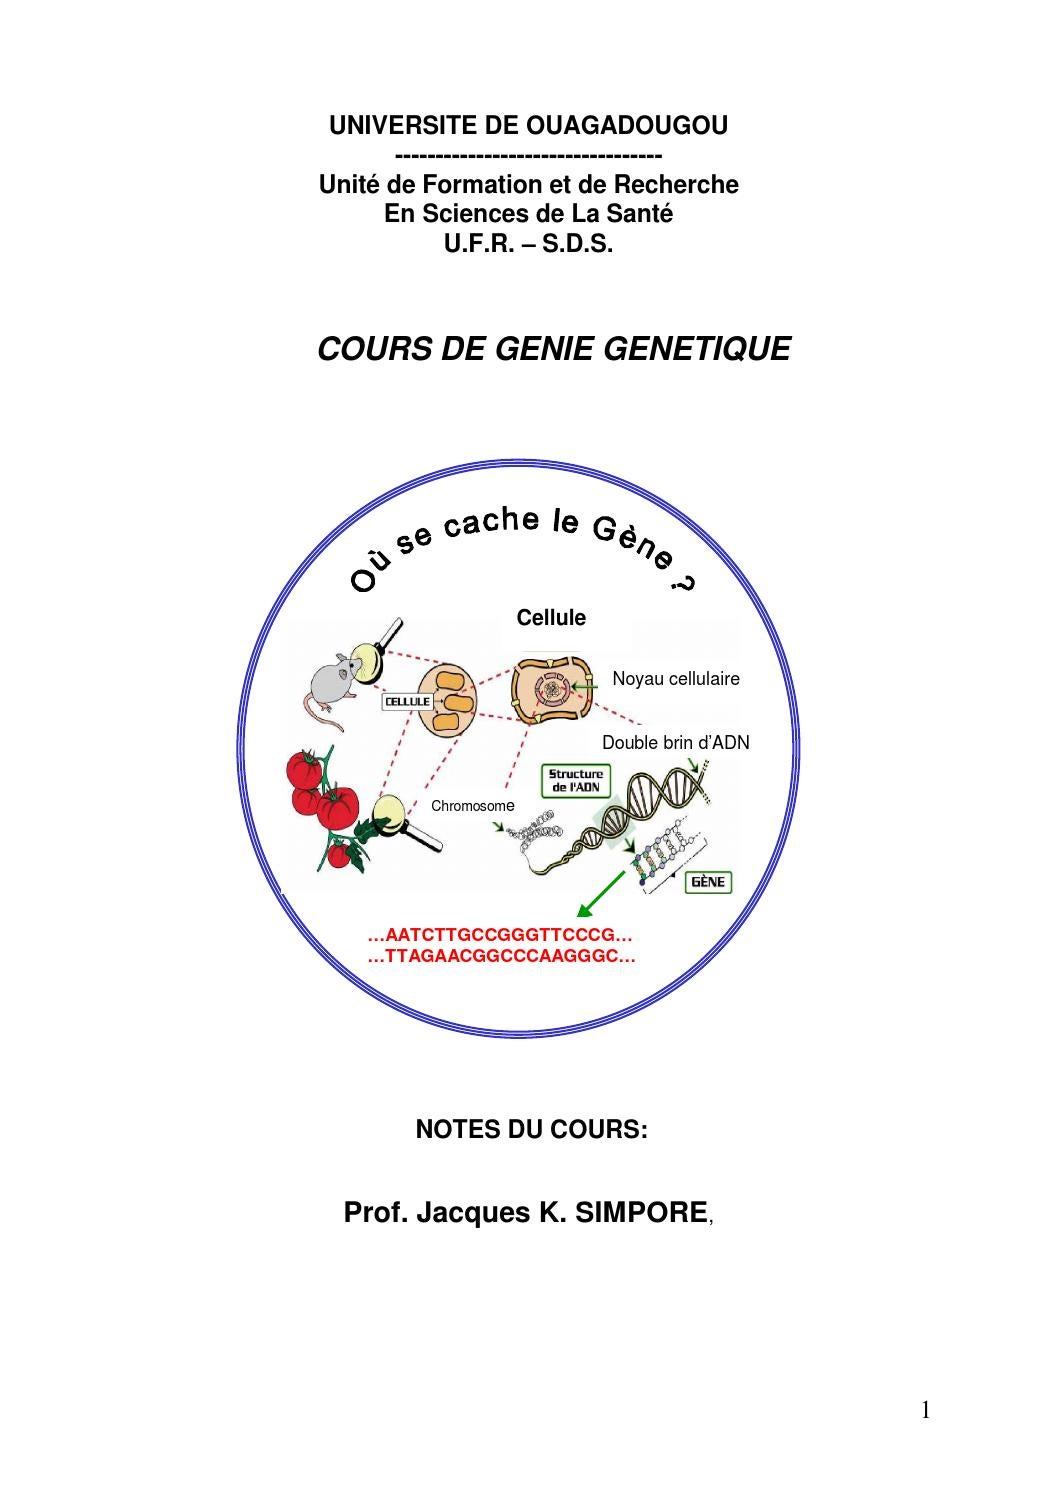 Cellule A Grain Exterieur Genie Genetique By Mouloud Taouzinet Issuu